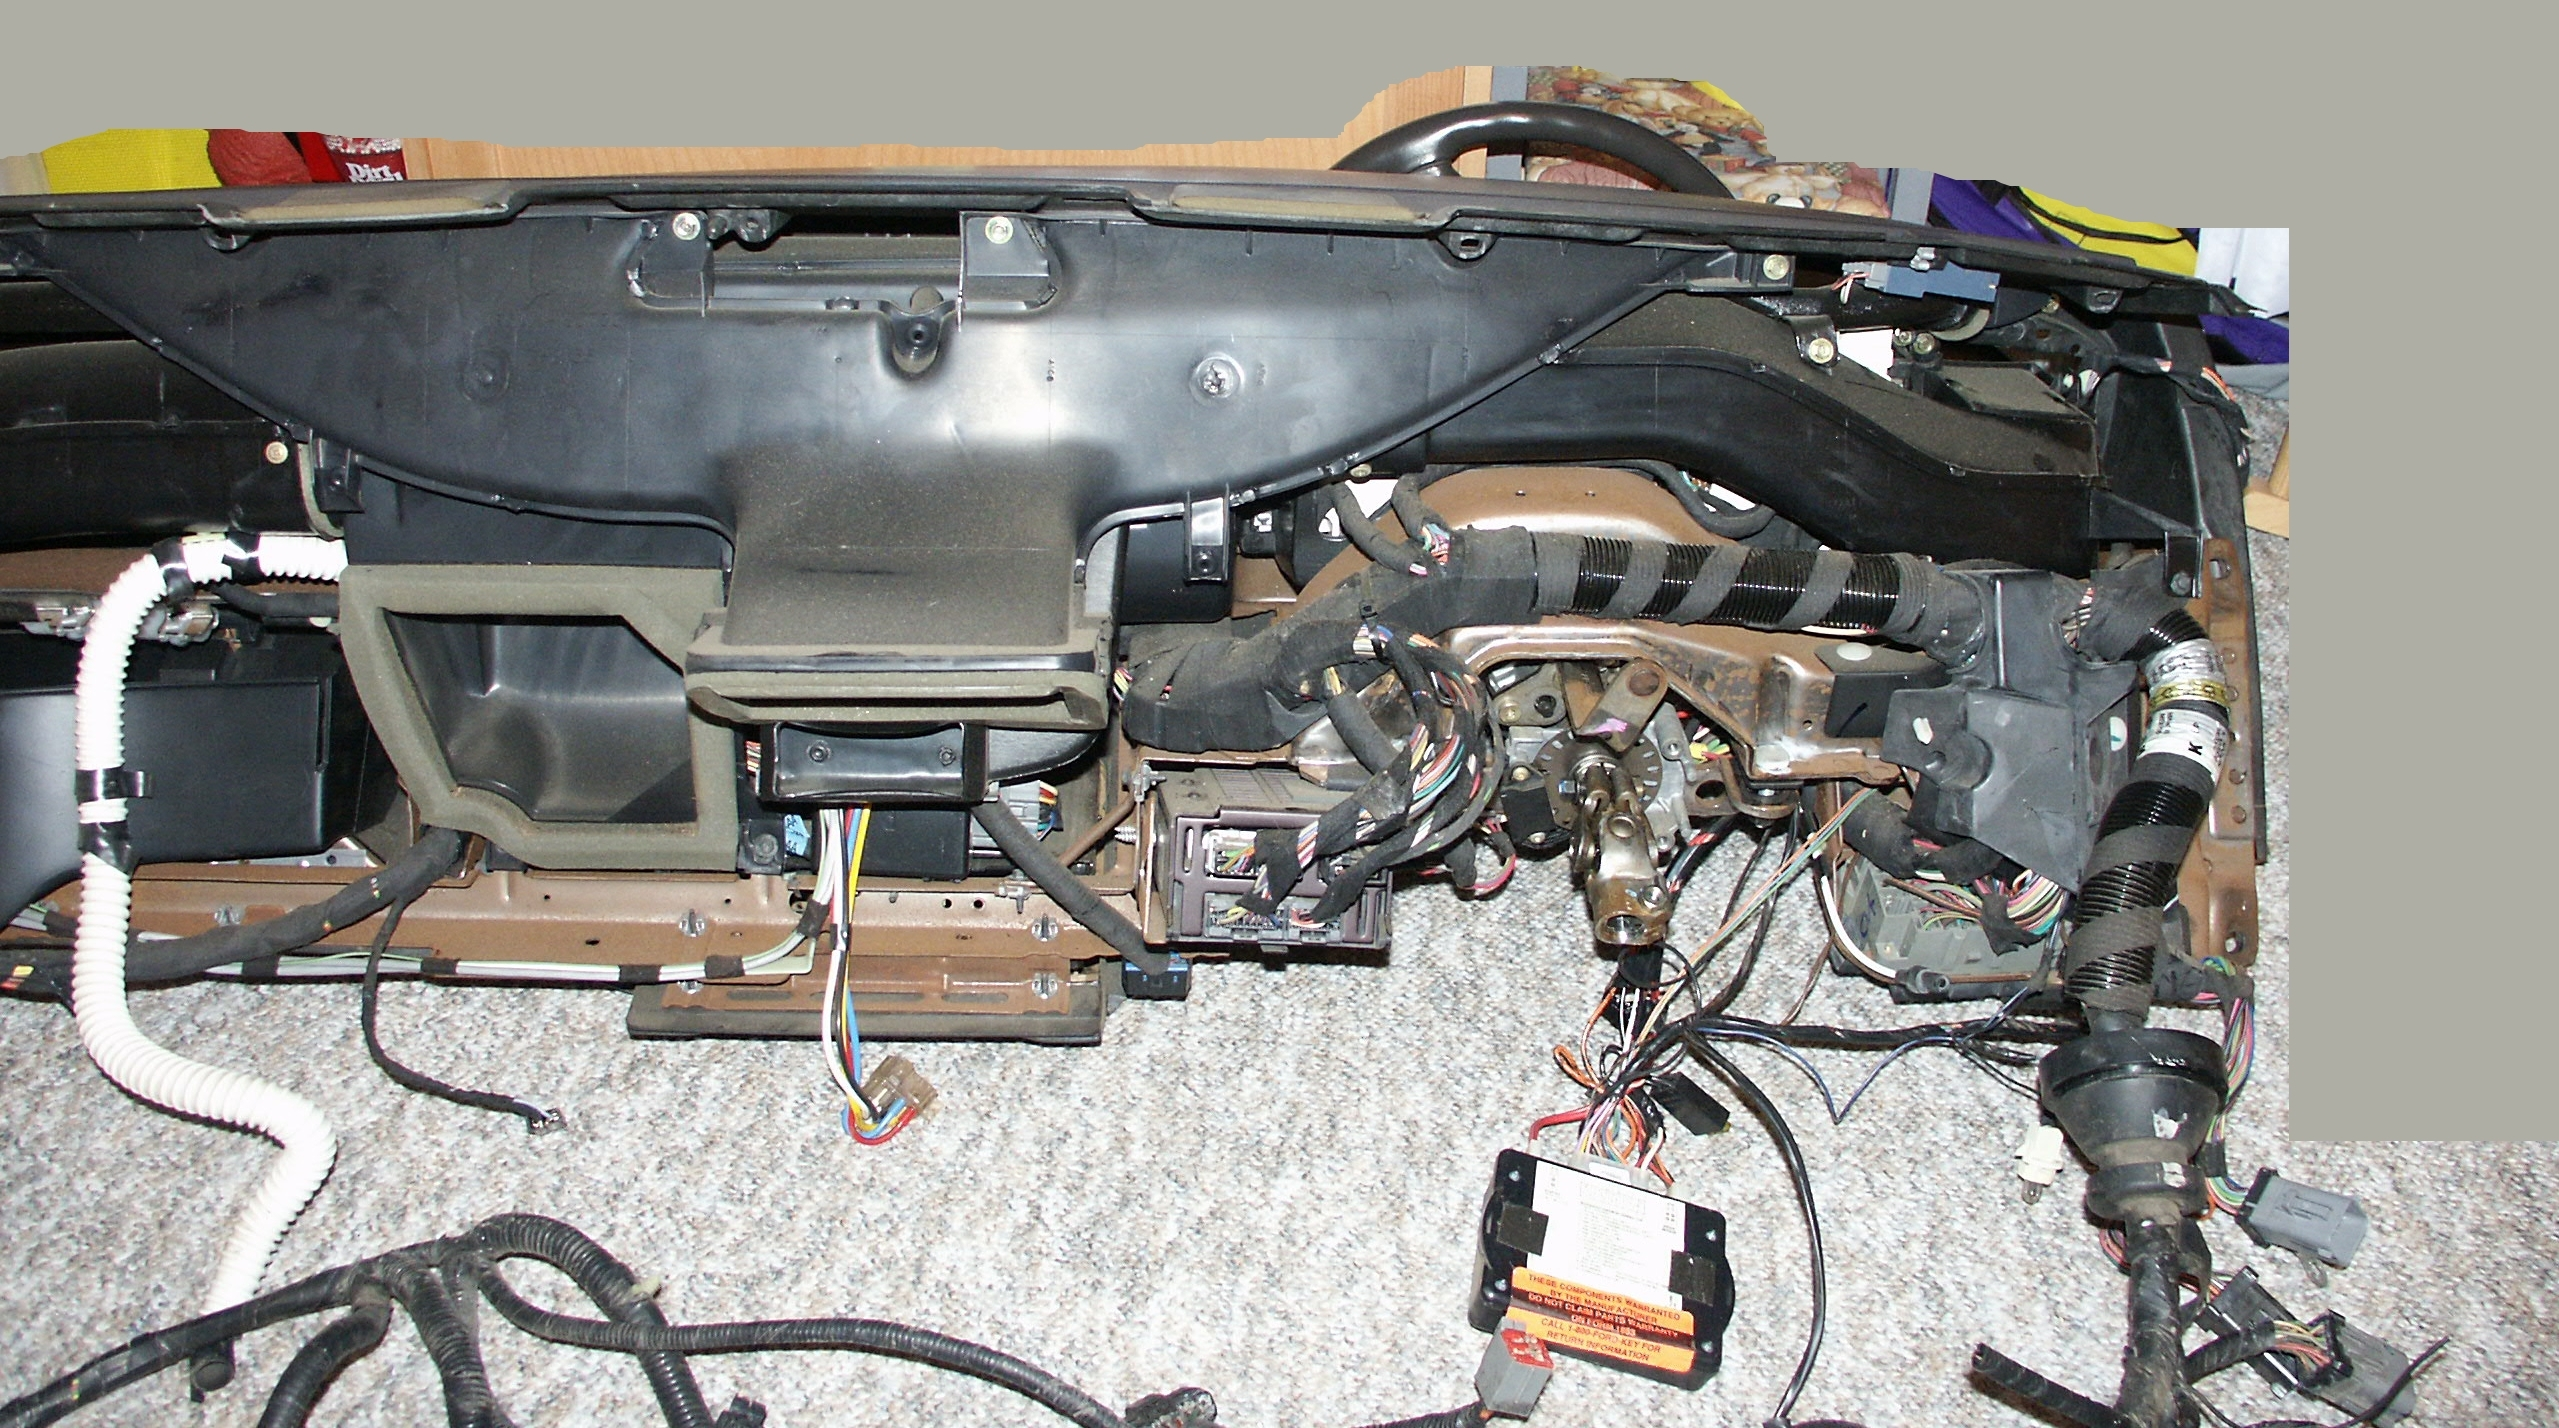 Plugs 2003 F150 Dash Diagram Circuit Wiring And Hub Ford Dashboard Reconstruction Forum Rh Fordf150 Net 1995 Body